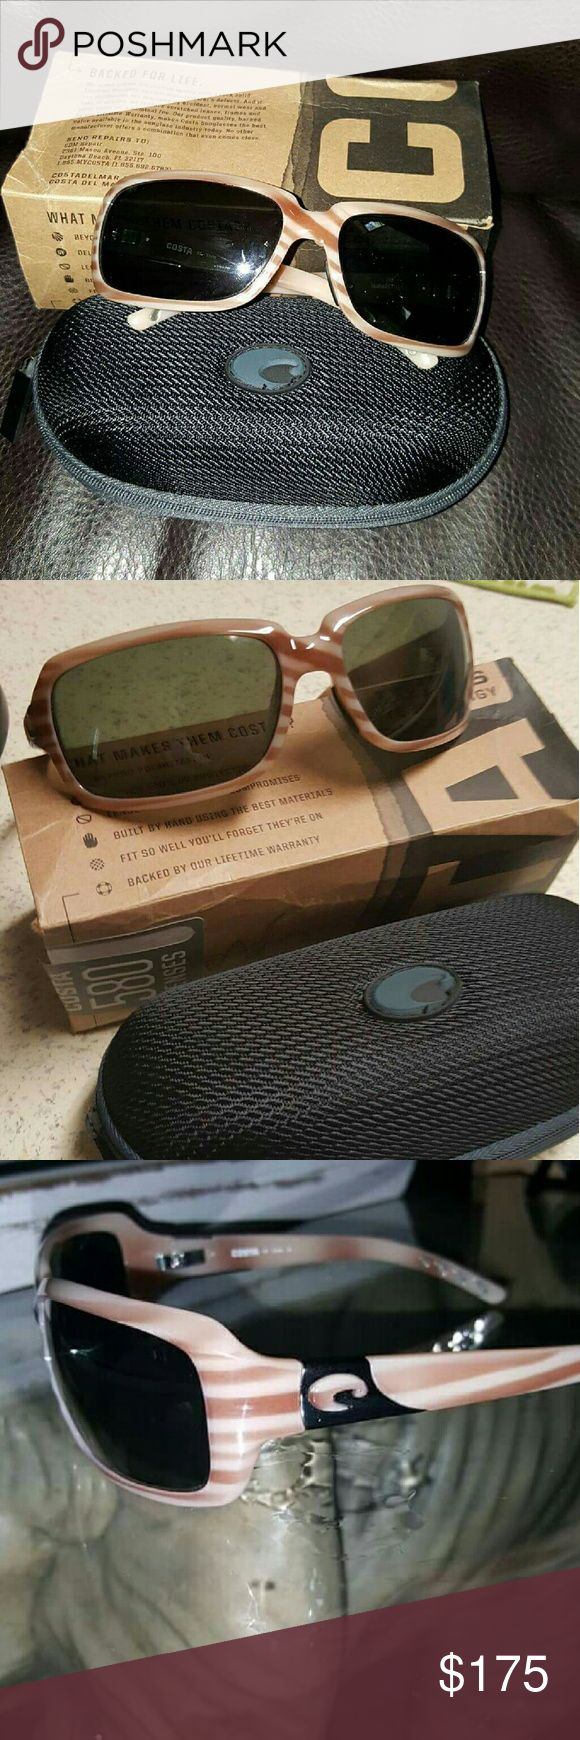 Costa sunglasses Womens Costa sunglasses, Isabela style. They we're bought for me as a gift and they aren't my style. They have NEVER been worn and are still in the original box. They come with the black case and the Costa sticker. The lenses are 580 glass. These retail for 220$ brand new. MAKE OFFER IF INTERESTED Accessories Sunglasses